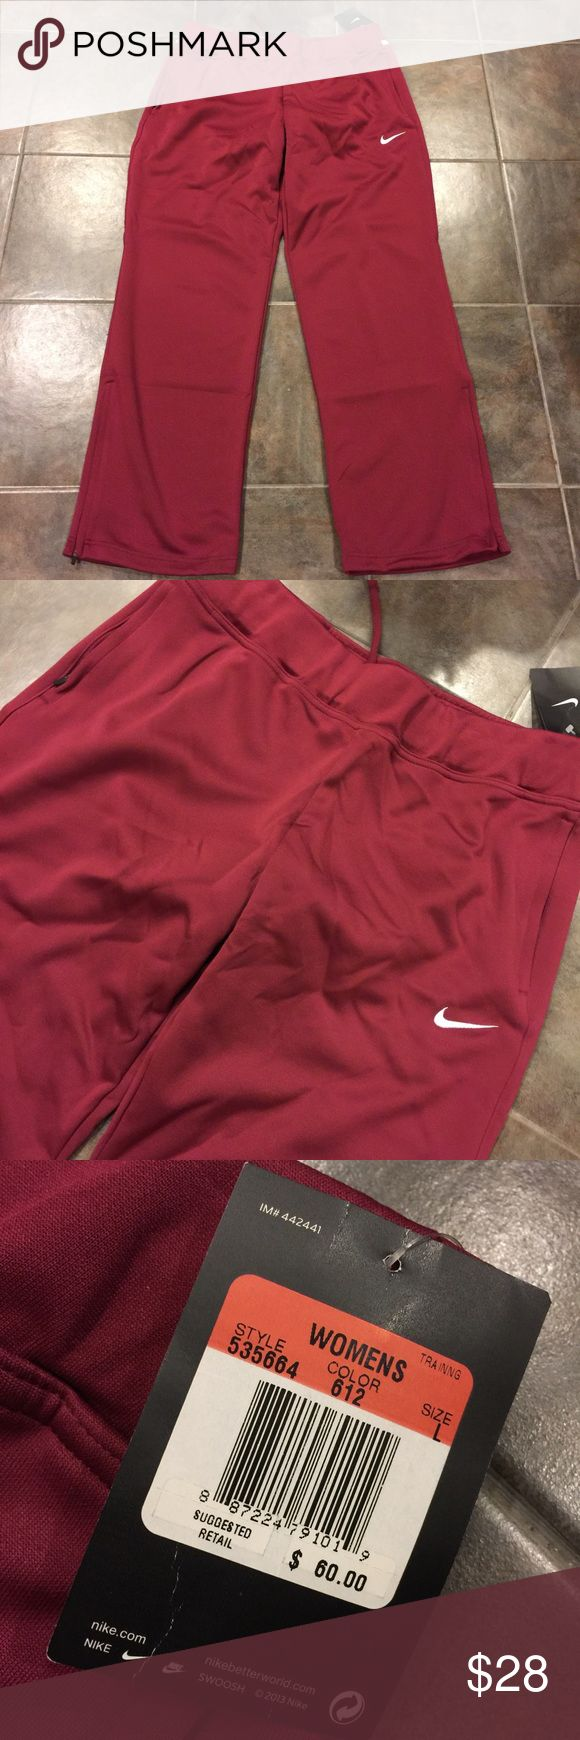 NIKE NWT Deep Red Dri Fit Training Sweatpants Brand new with tags Nike training sweatpants done in Dri Fit material. Gorgeous deep red color with white accents. Size large. Nike Pants Track Pants & Joggers